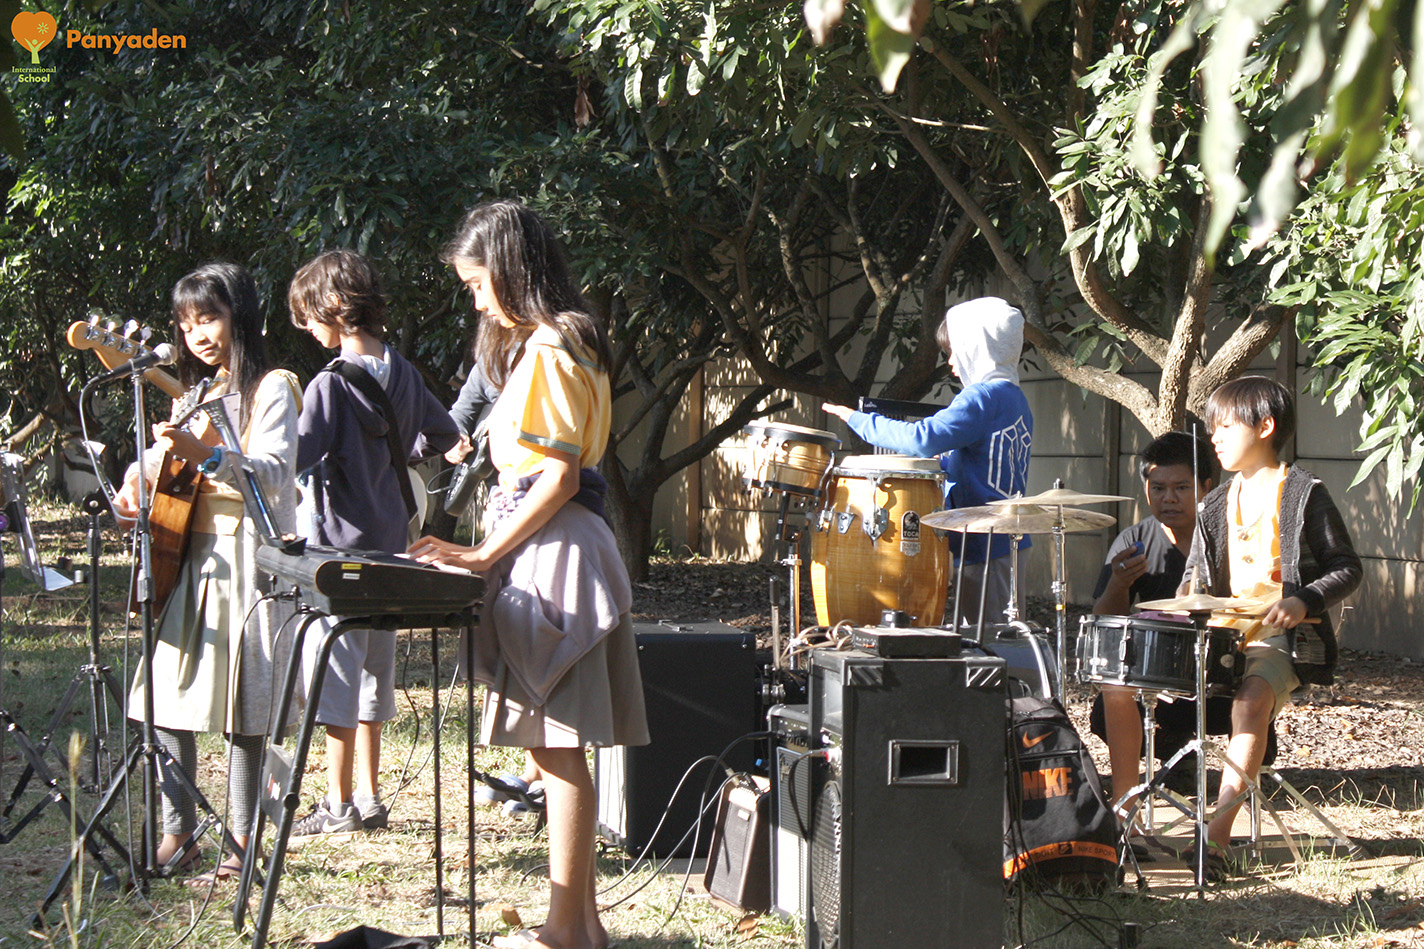 Father's Day at Panyaden - school band's music tribute